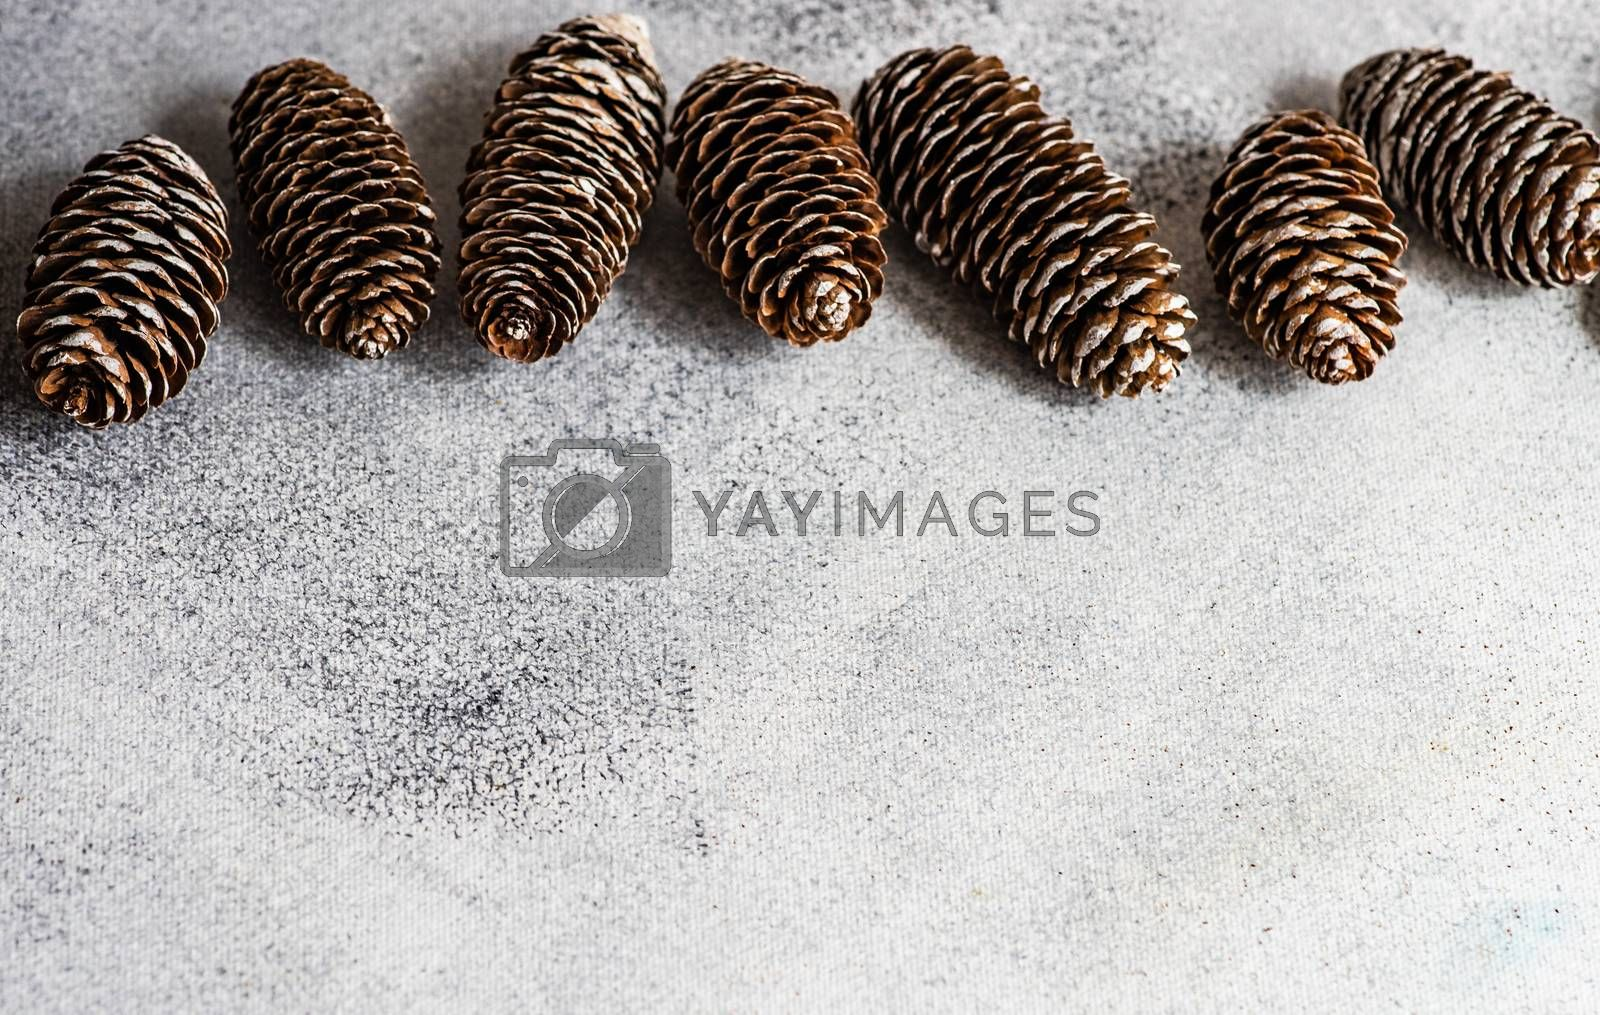 Pine cones in a frame on white concrete background with copy space